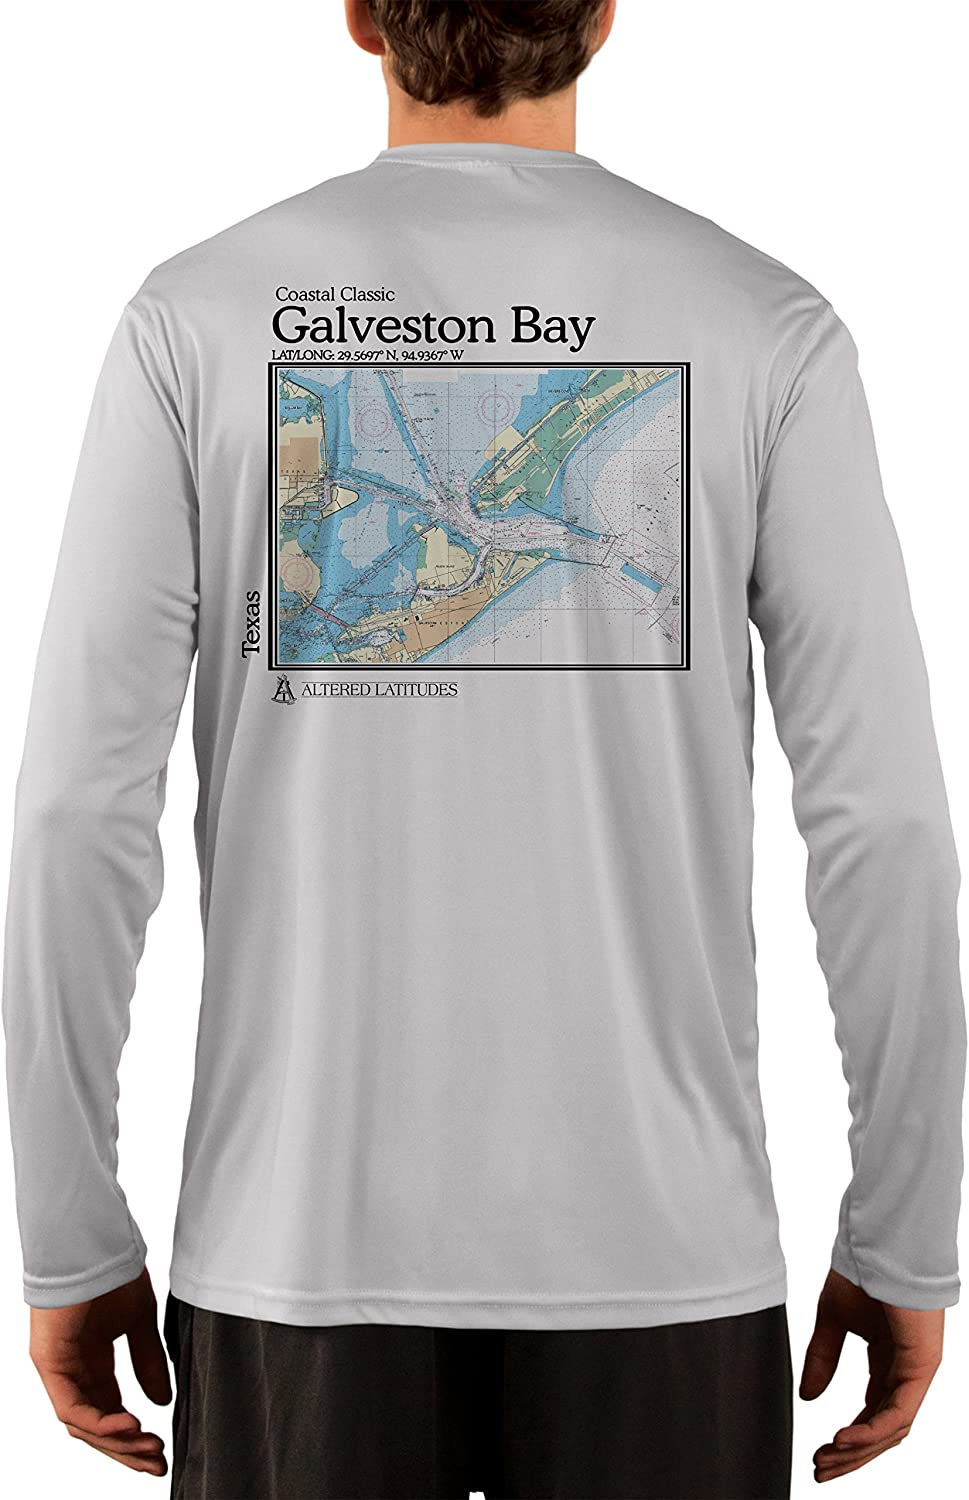 Coastal Classics Galveston Nautical Chart Men's UPF 50+ UV/Sun Protection Long Sleeve T-Shirt